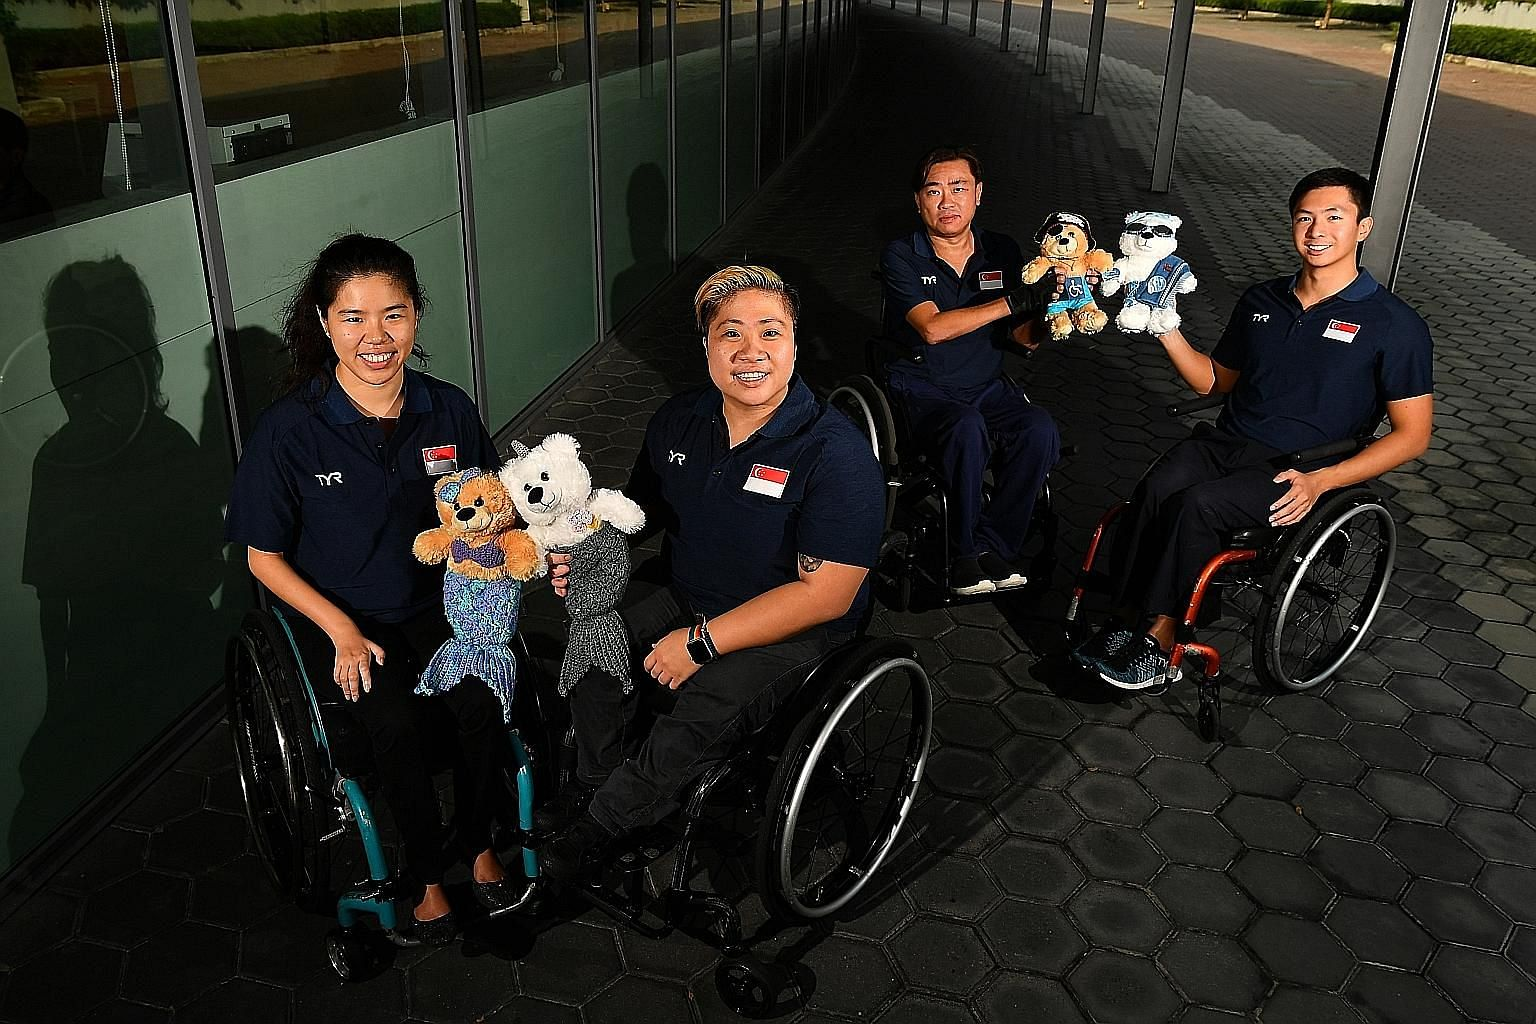 From left: Yip Pin Xiu, Theresa Goh, Eugene Png and Toh Wei Soong will be competing in the mixed team 4x50m freestyle (20 points) during the World Para Swimming World Series' Singapore leg at the OCBC Aquatic Centre.